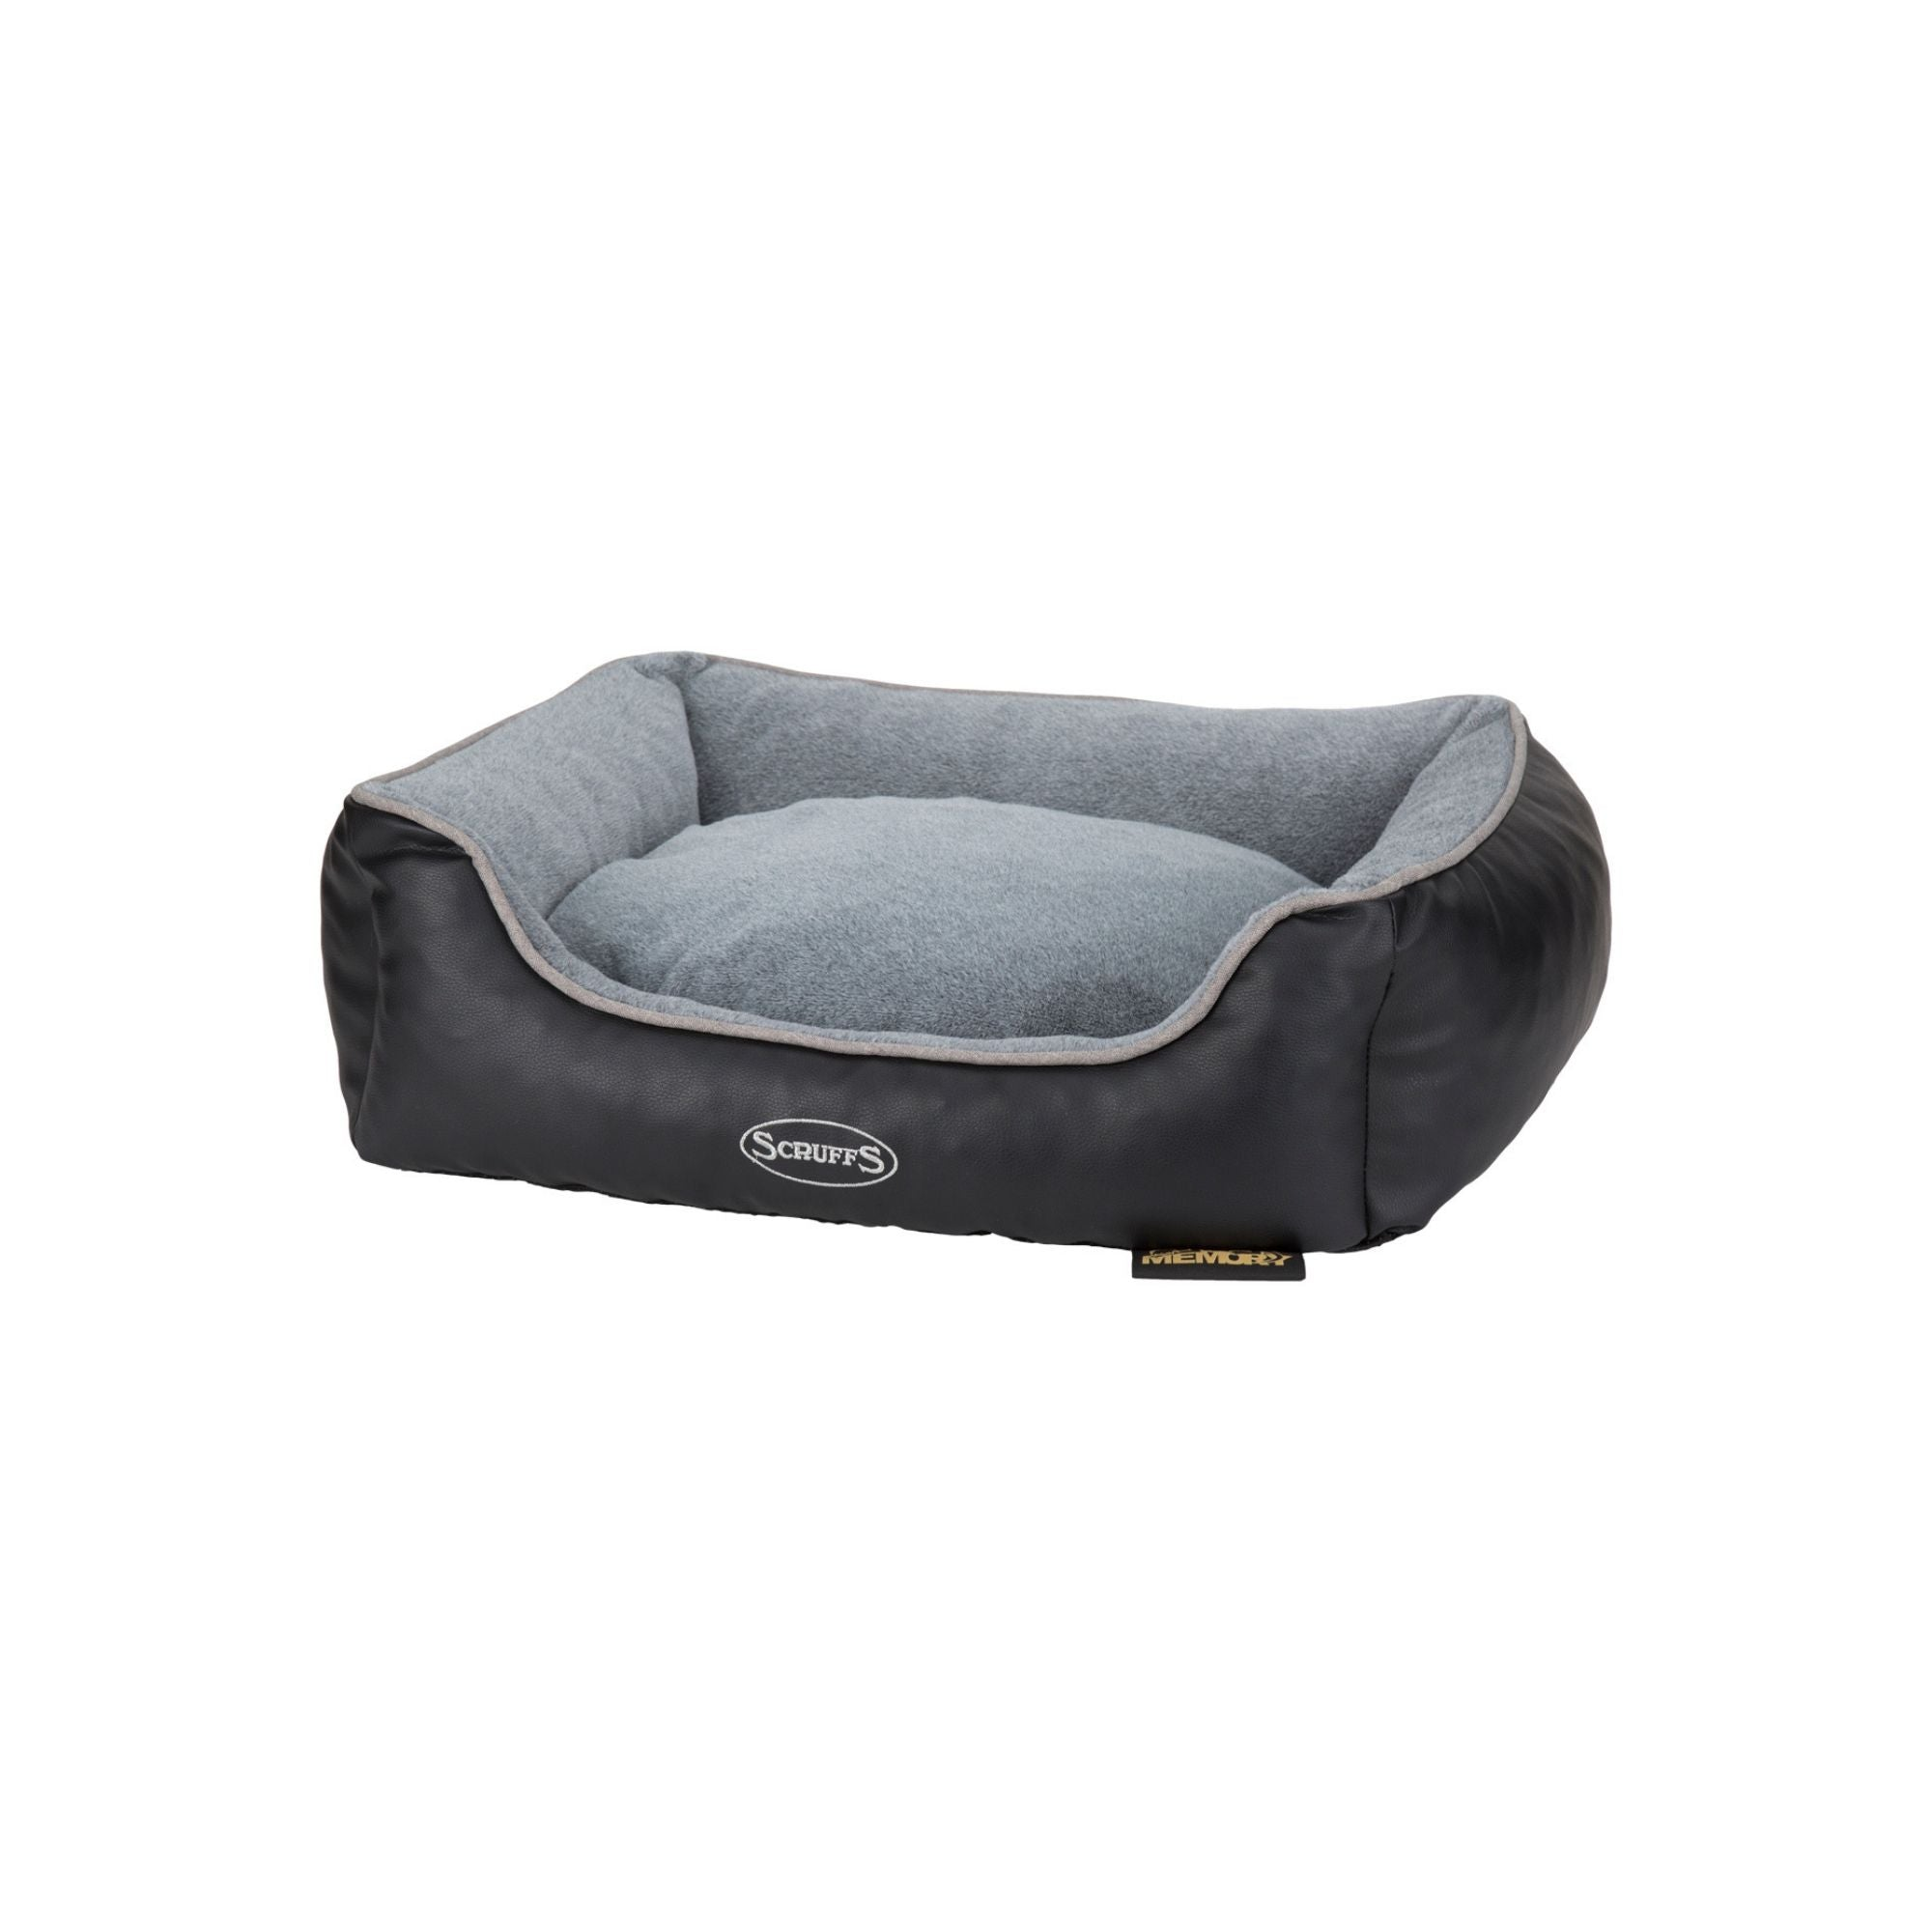 Scruffs Chateau Grey Orthopedic Box Bed, Memory Foam Dog Bed | Barks & Bunnies